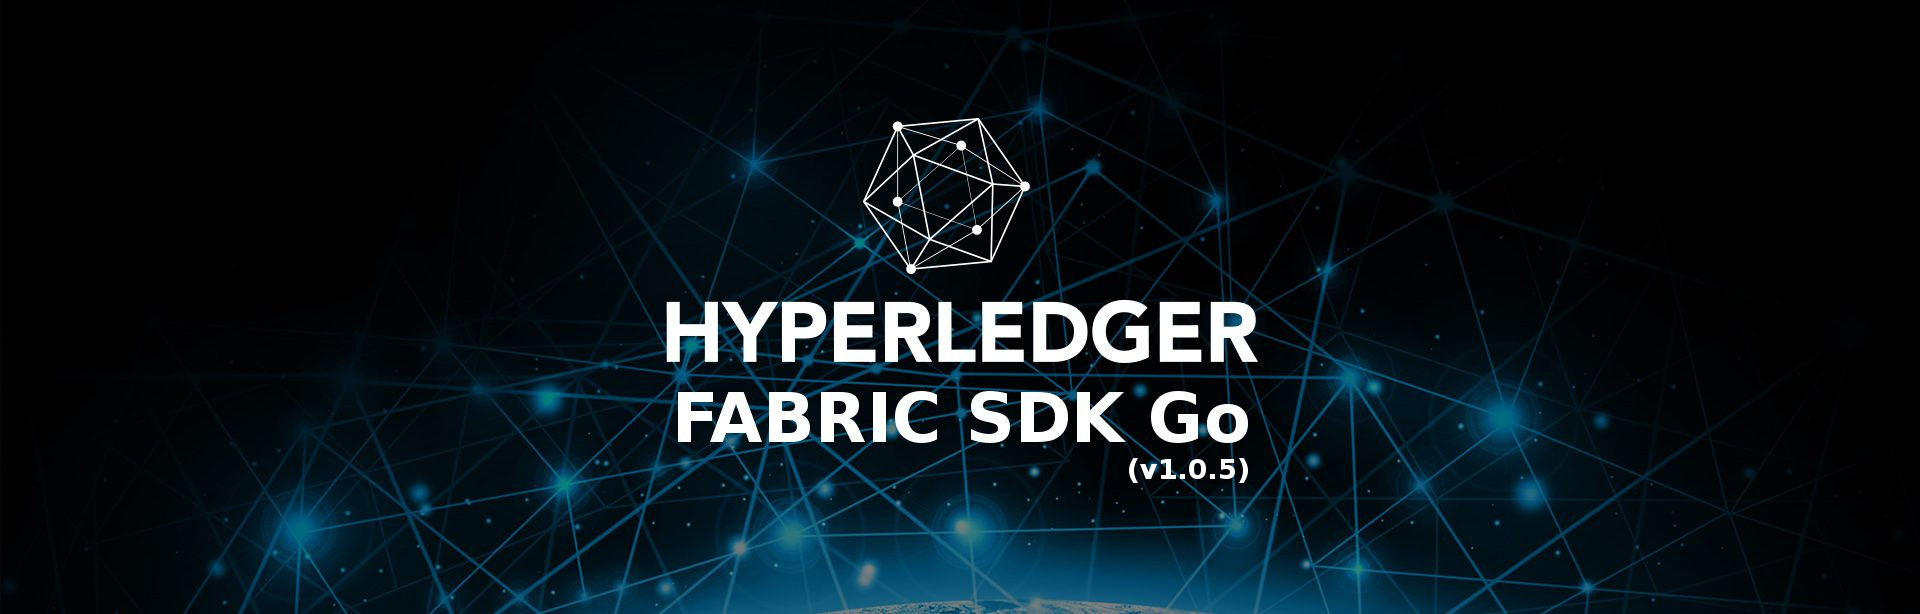 Tutorial Hyperledger Fabric SDK Go: How to build your first app? (v1.0.5)